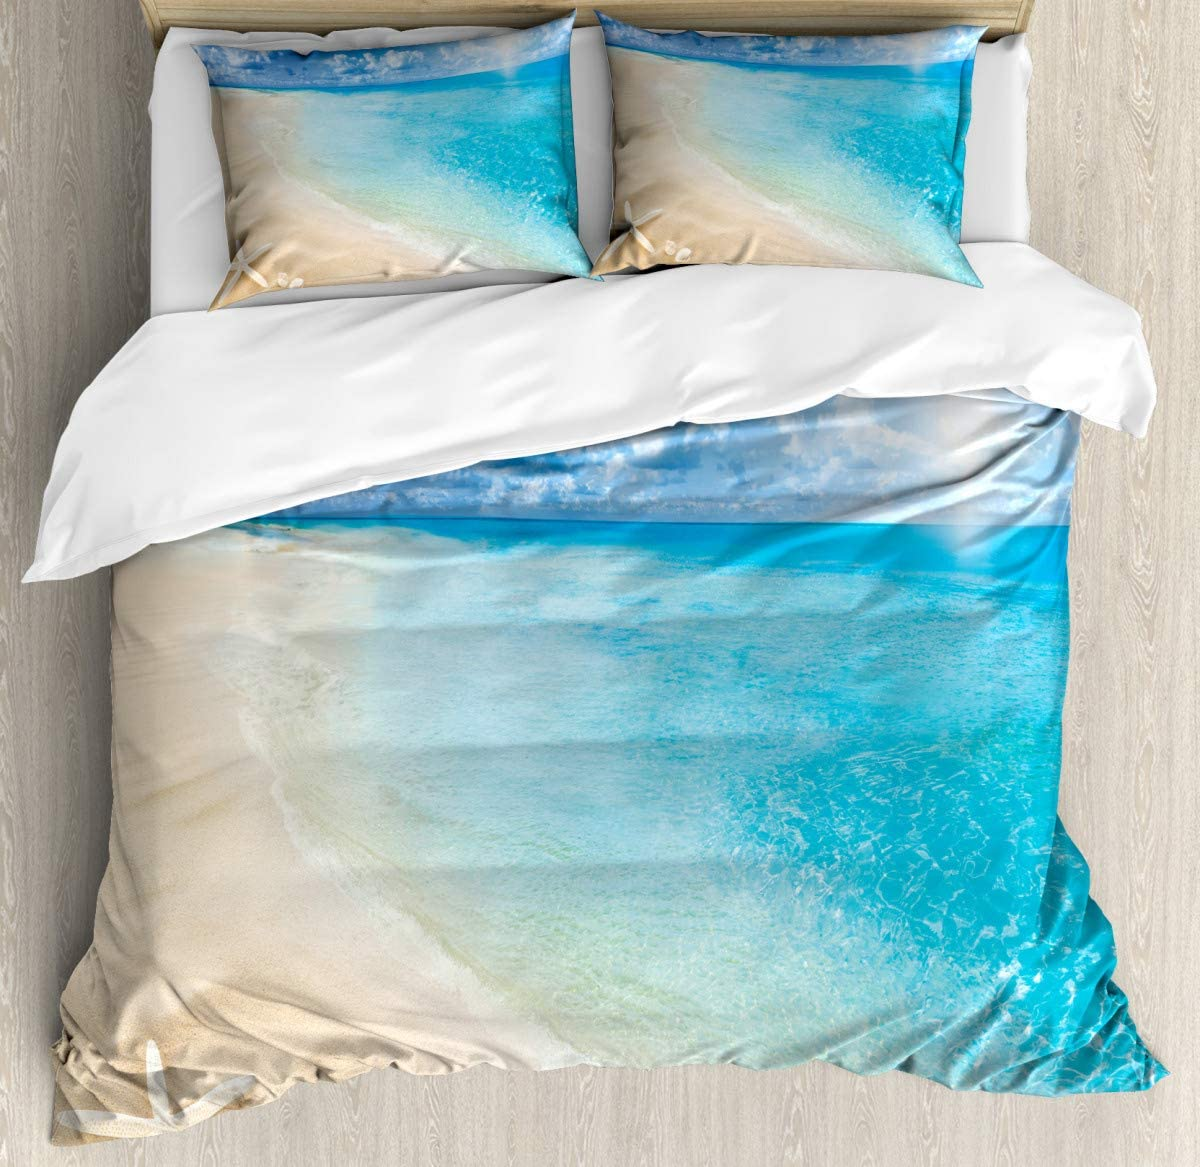 """Super Soft Cover quiltSunny Seashore and Shells Duvet Cover SetSuper Soft Bedding Set and Easy Care86 x102/19""""x29""""inch"""